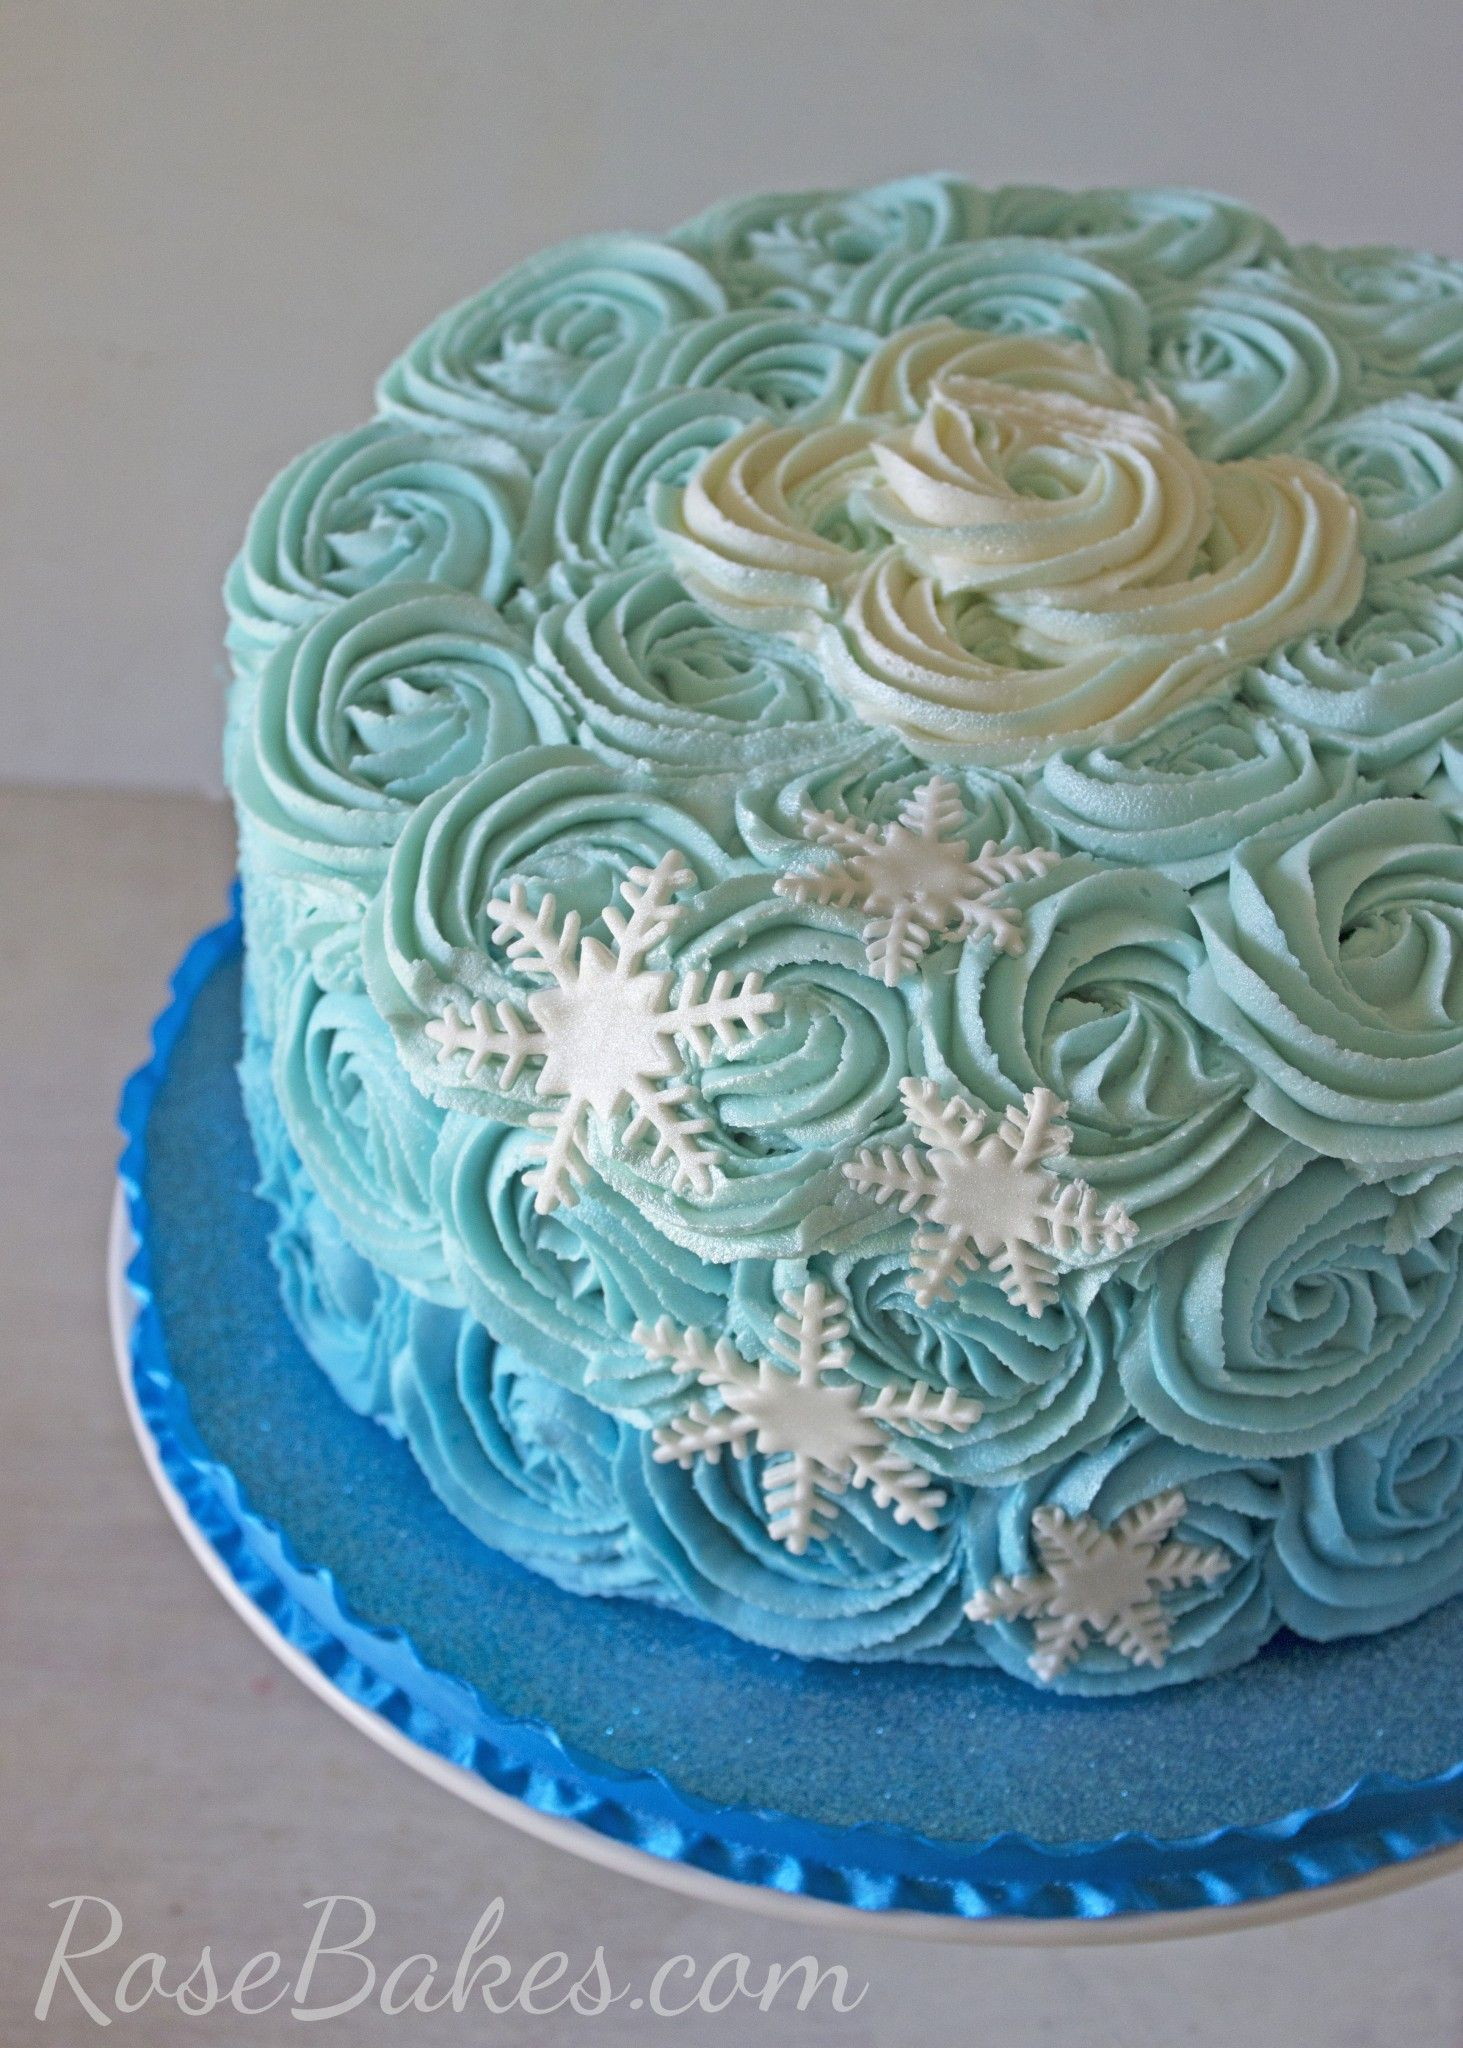 Cake With Roses Buttercream : Ombre Buttercream Roses Frozen Cake & Cupcakes & Cookies ...